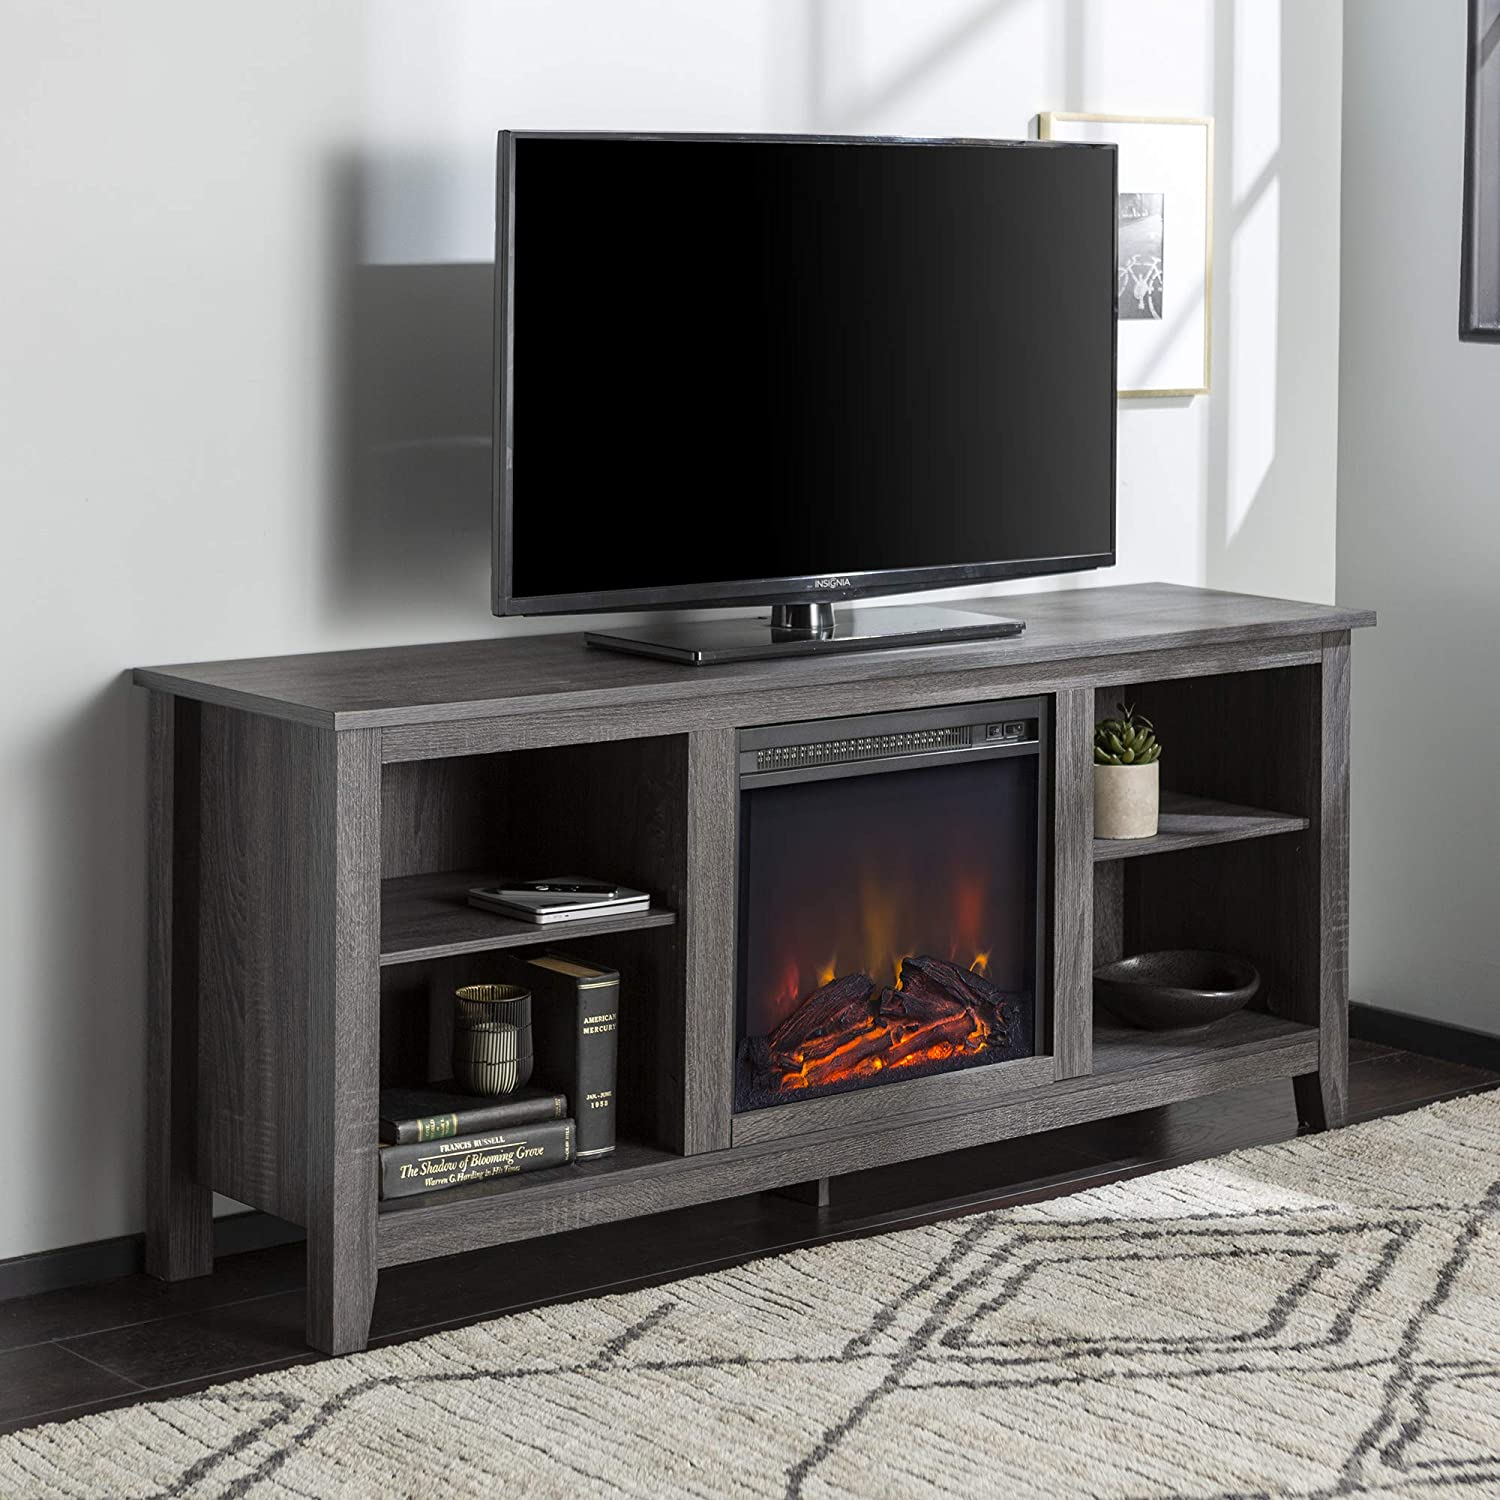 """Walker Edison Minimal Farmhouse Wood Universal Stand for TV's up to 64"""" Flat Screen Living Room Storage Shelves Entertainment Center, 58 Inch, Charcoal"""